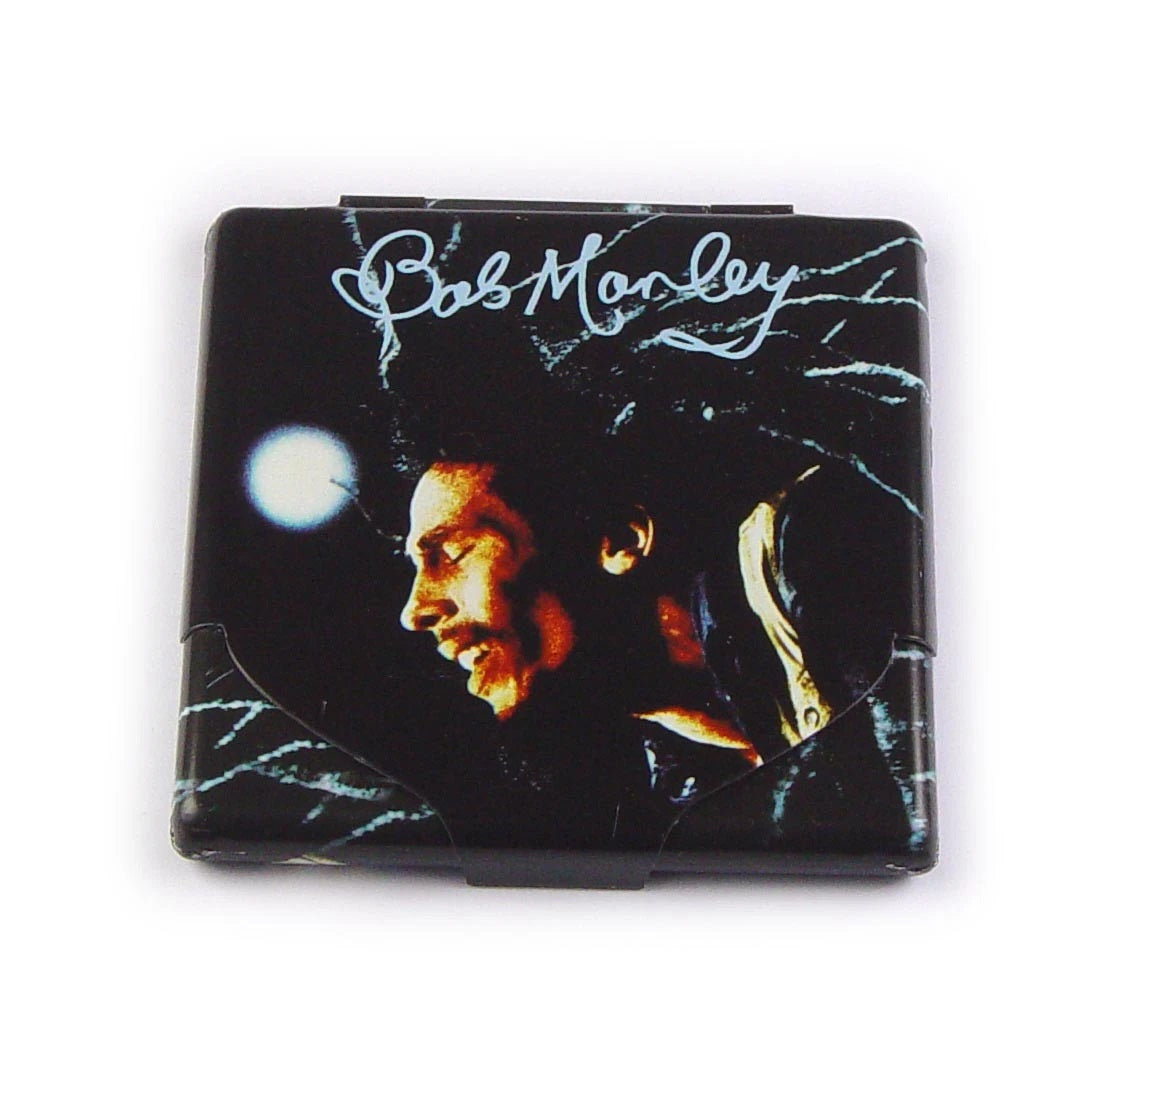 Bob Marley Colour Cigarette Case, Smoking Accessories by The Celebrity Gift Company